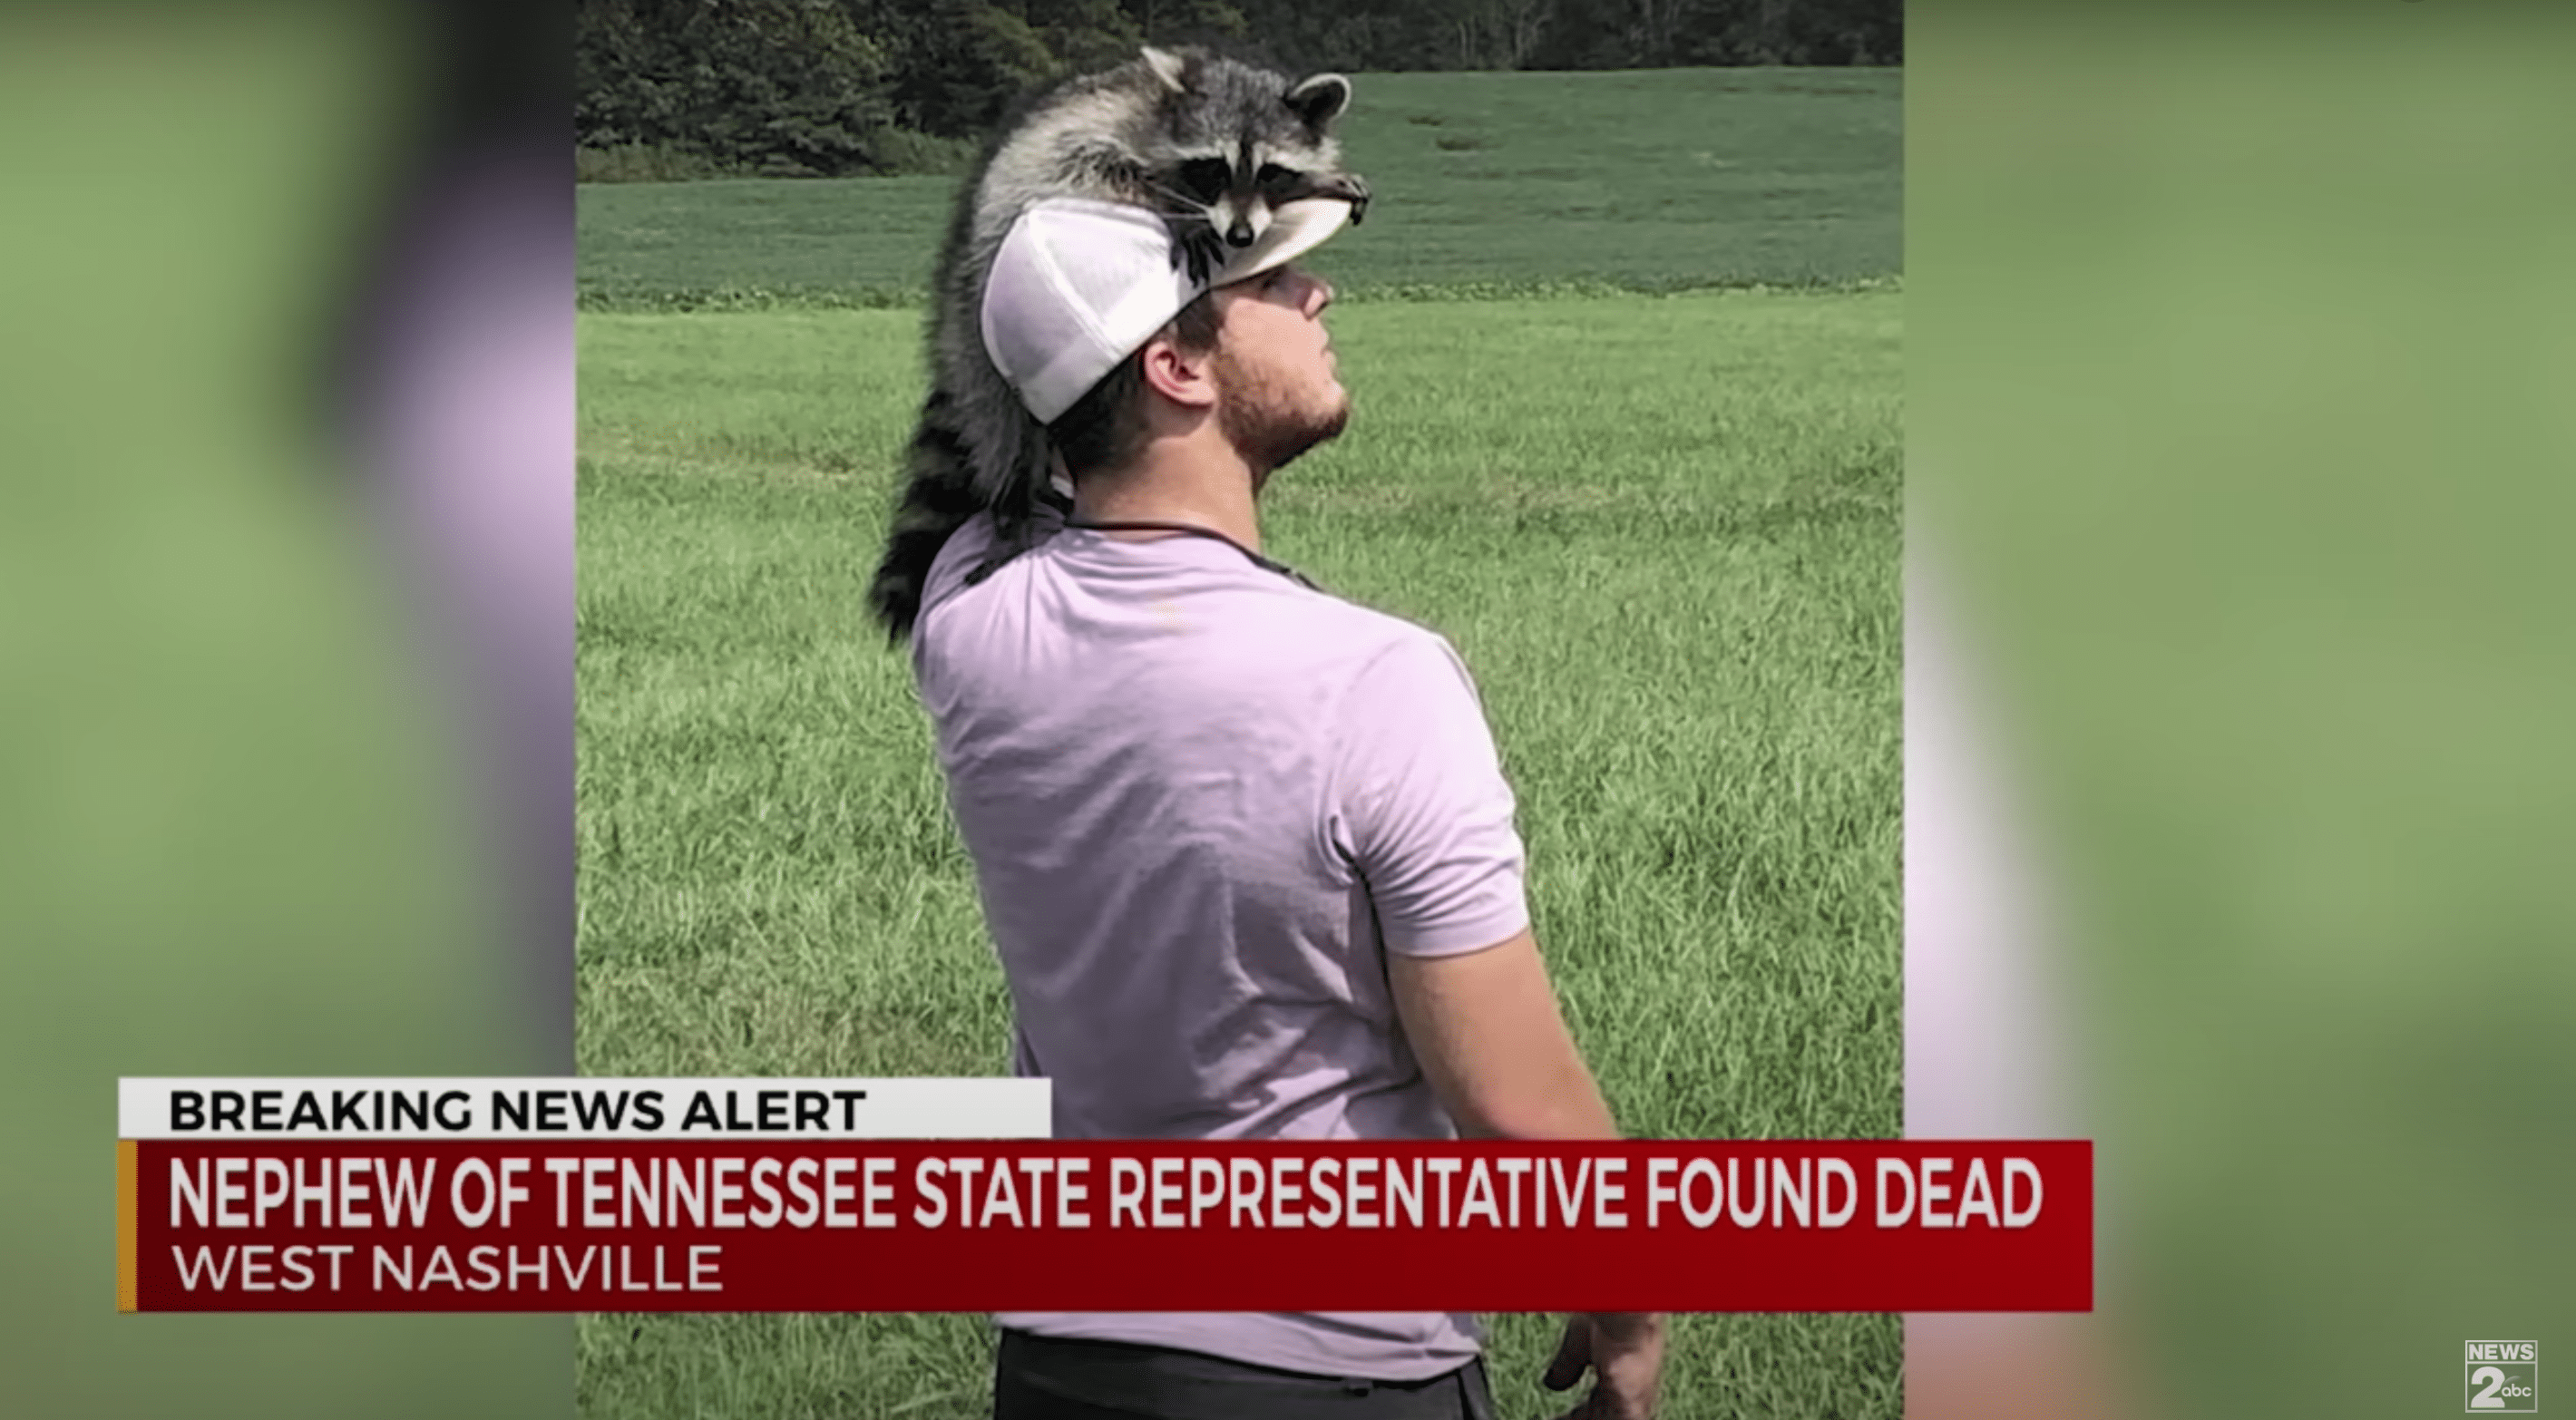 A young man who was tragically shot dead is pictured before his death enjoying nature as a racoon sits on his head | Photo: Youtube/WKRN News 2